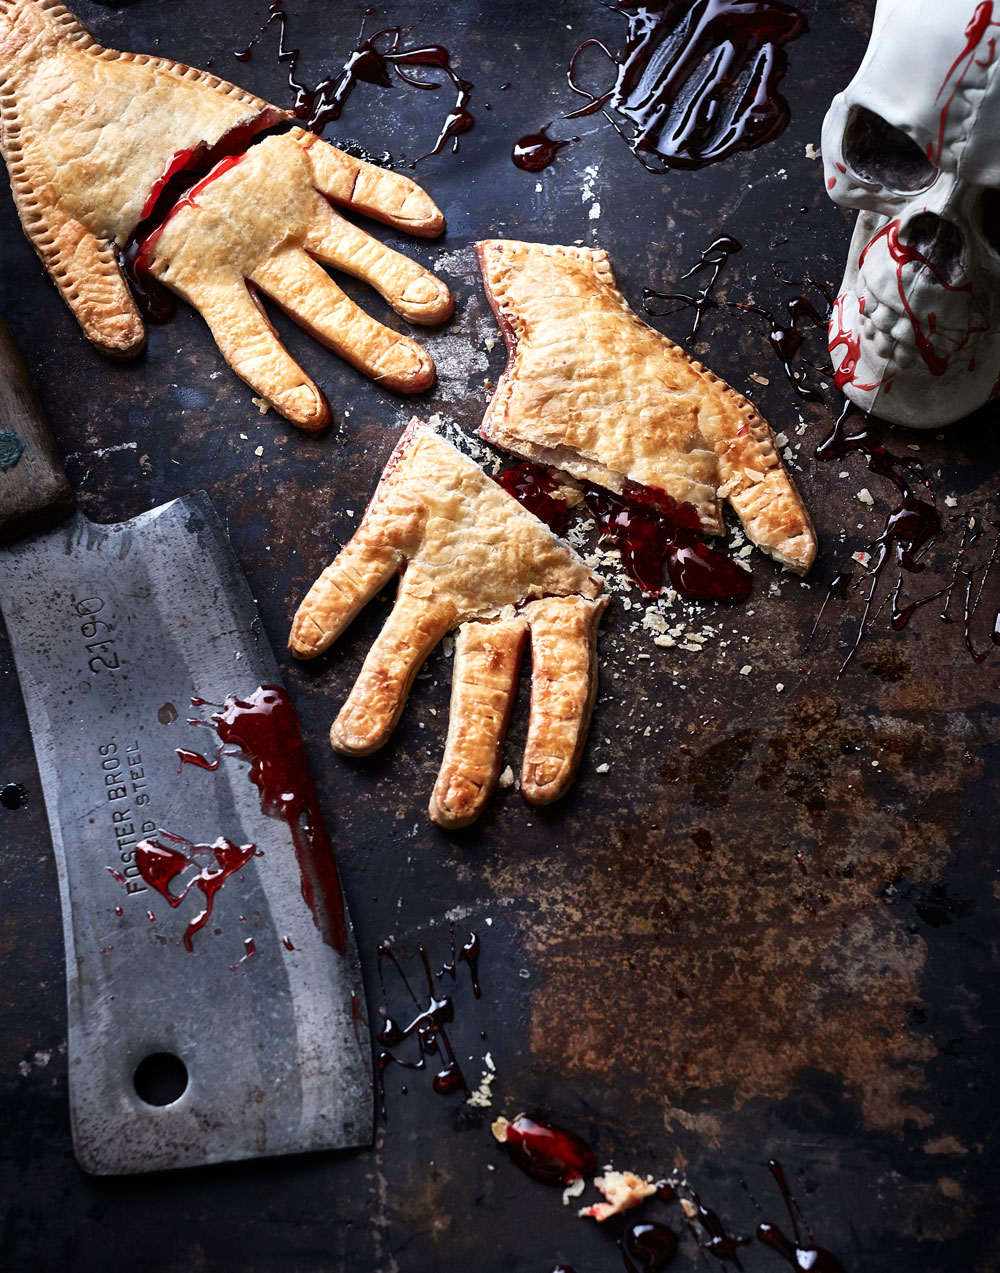 Kick Off Your Halloweekend with Severed Hand Pies